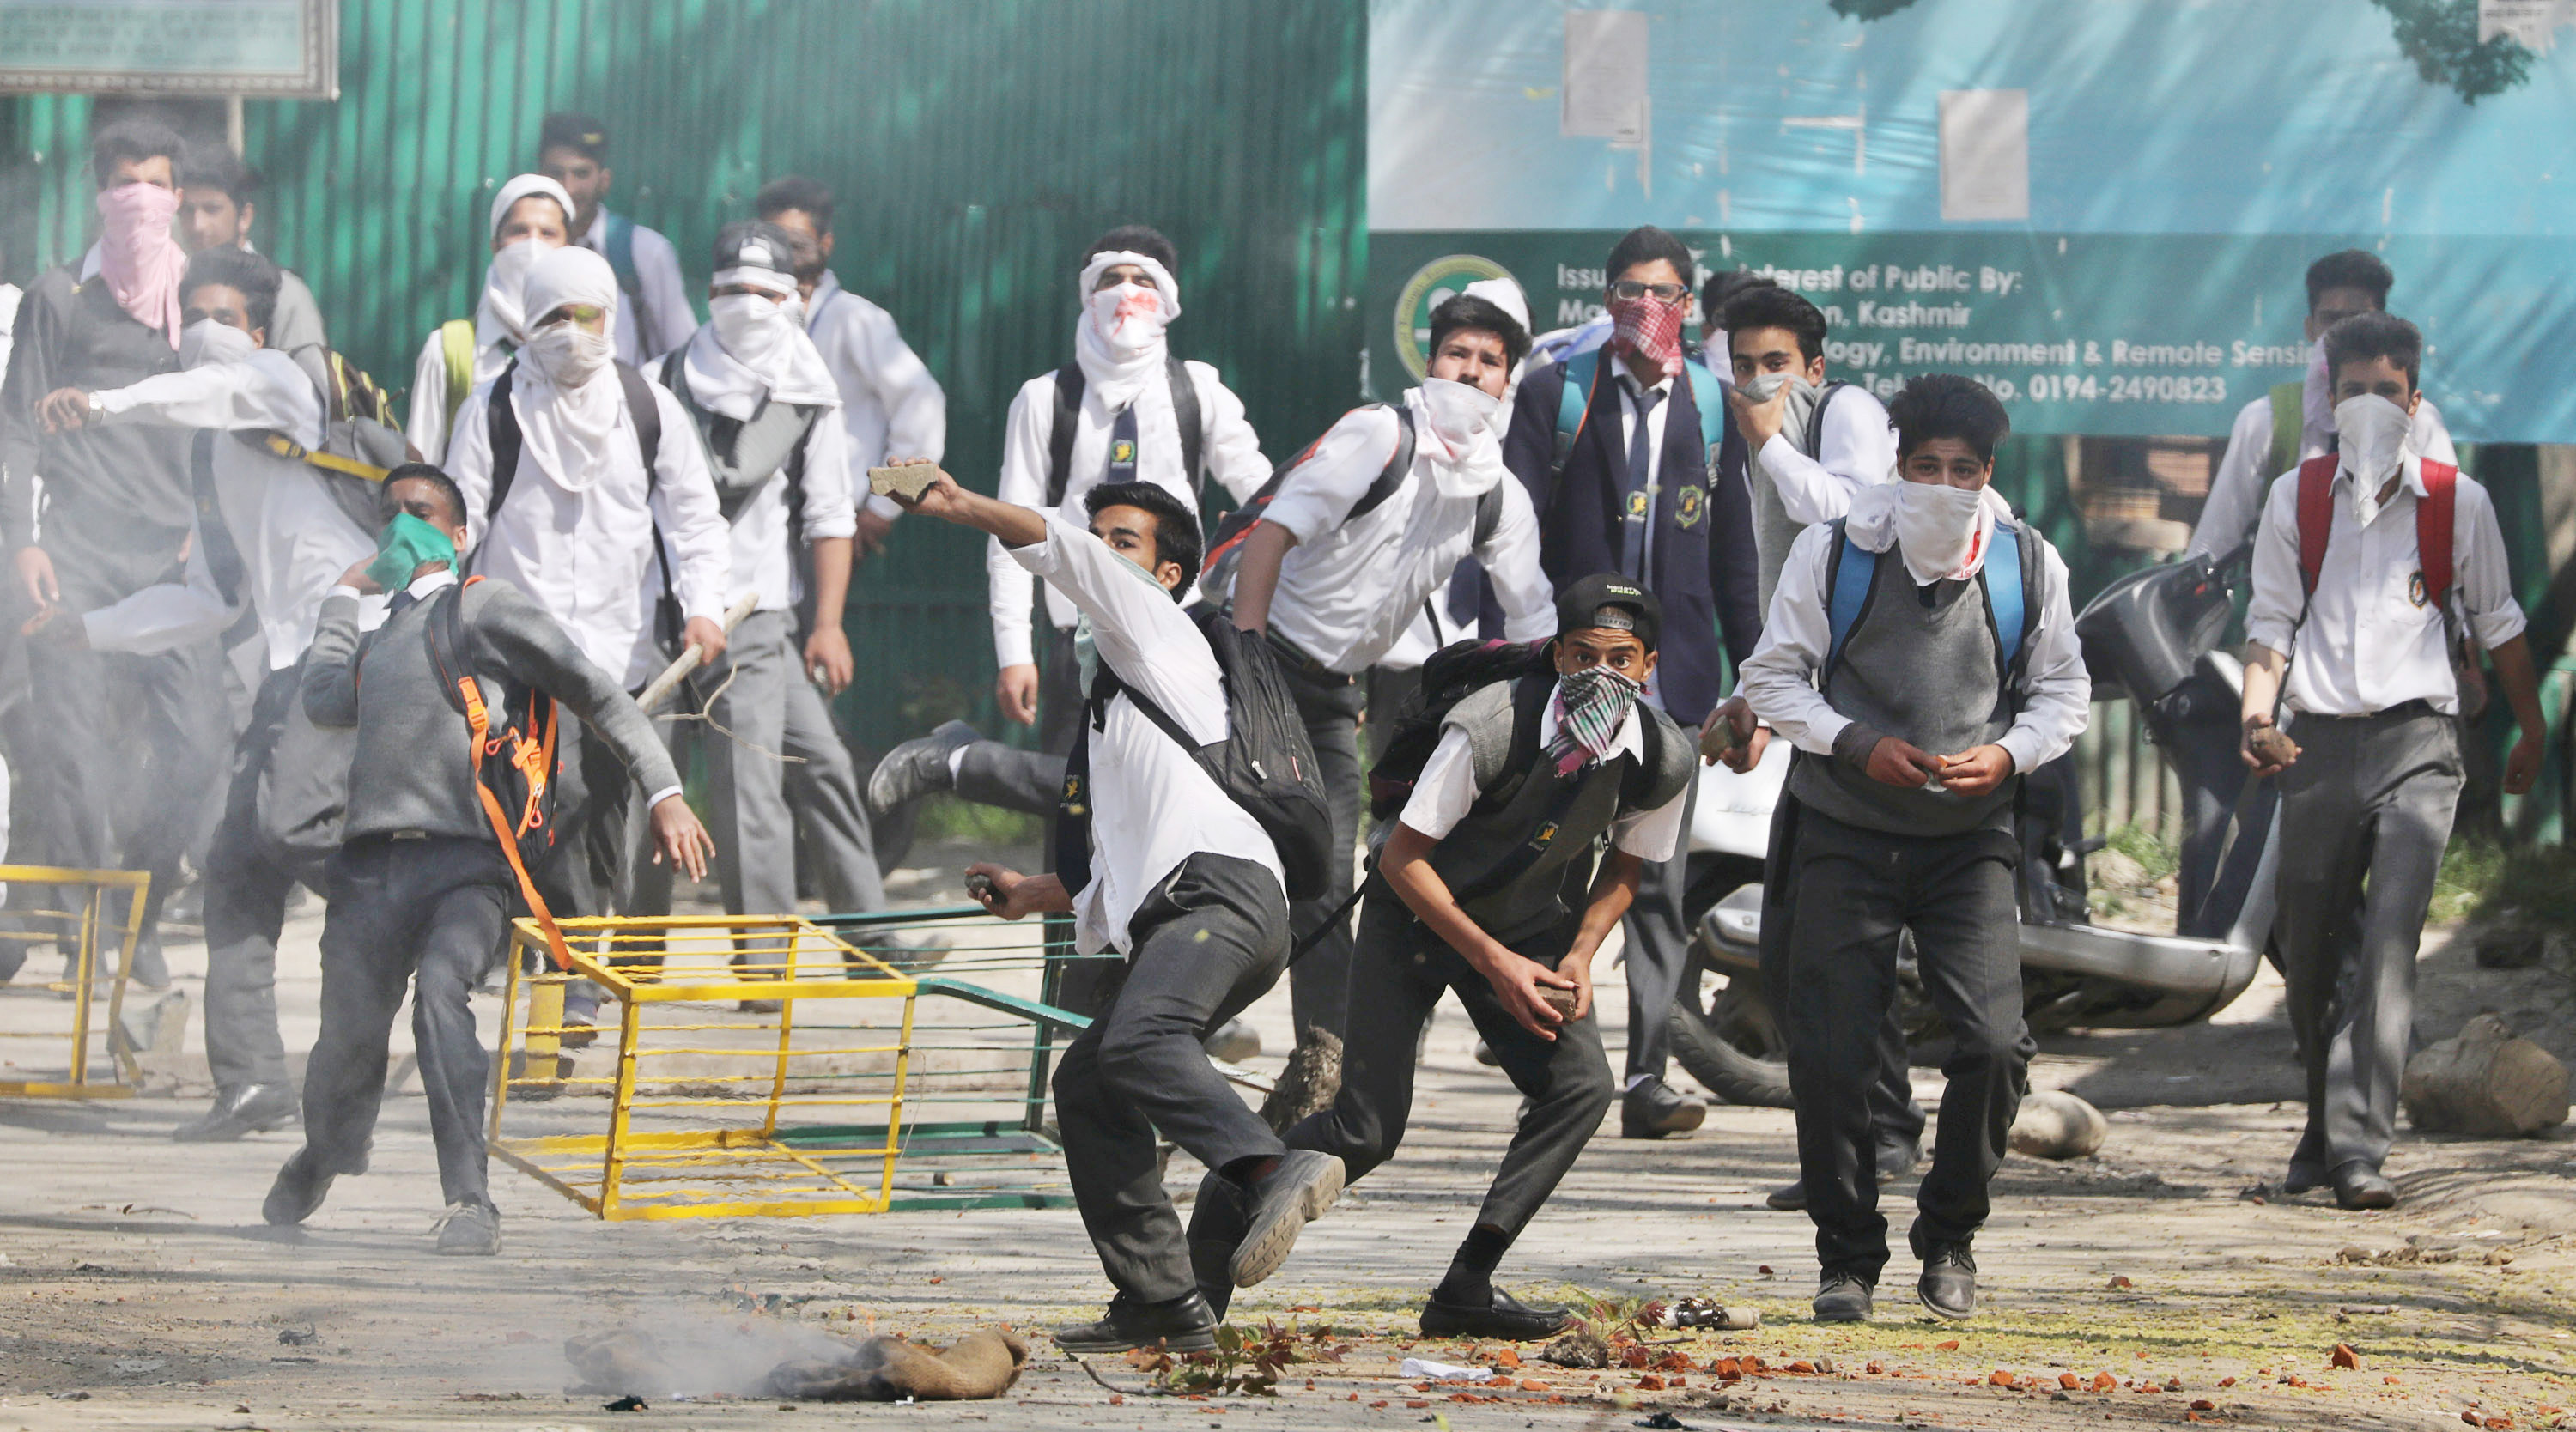 Kashmiri students clash with security forces near a college at Lal Chowk area on April 17, 2017, in Srinagar, India